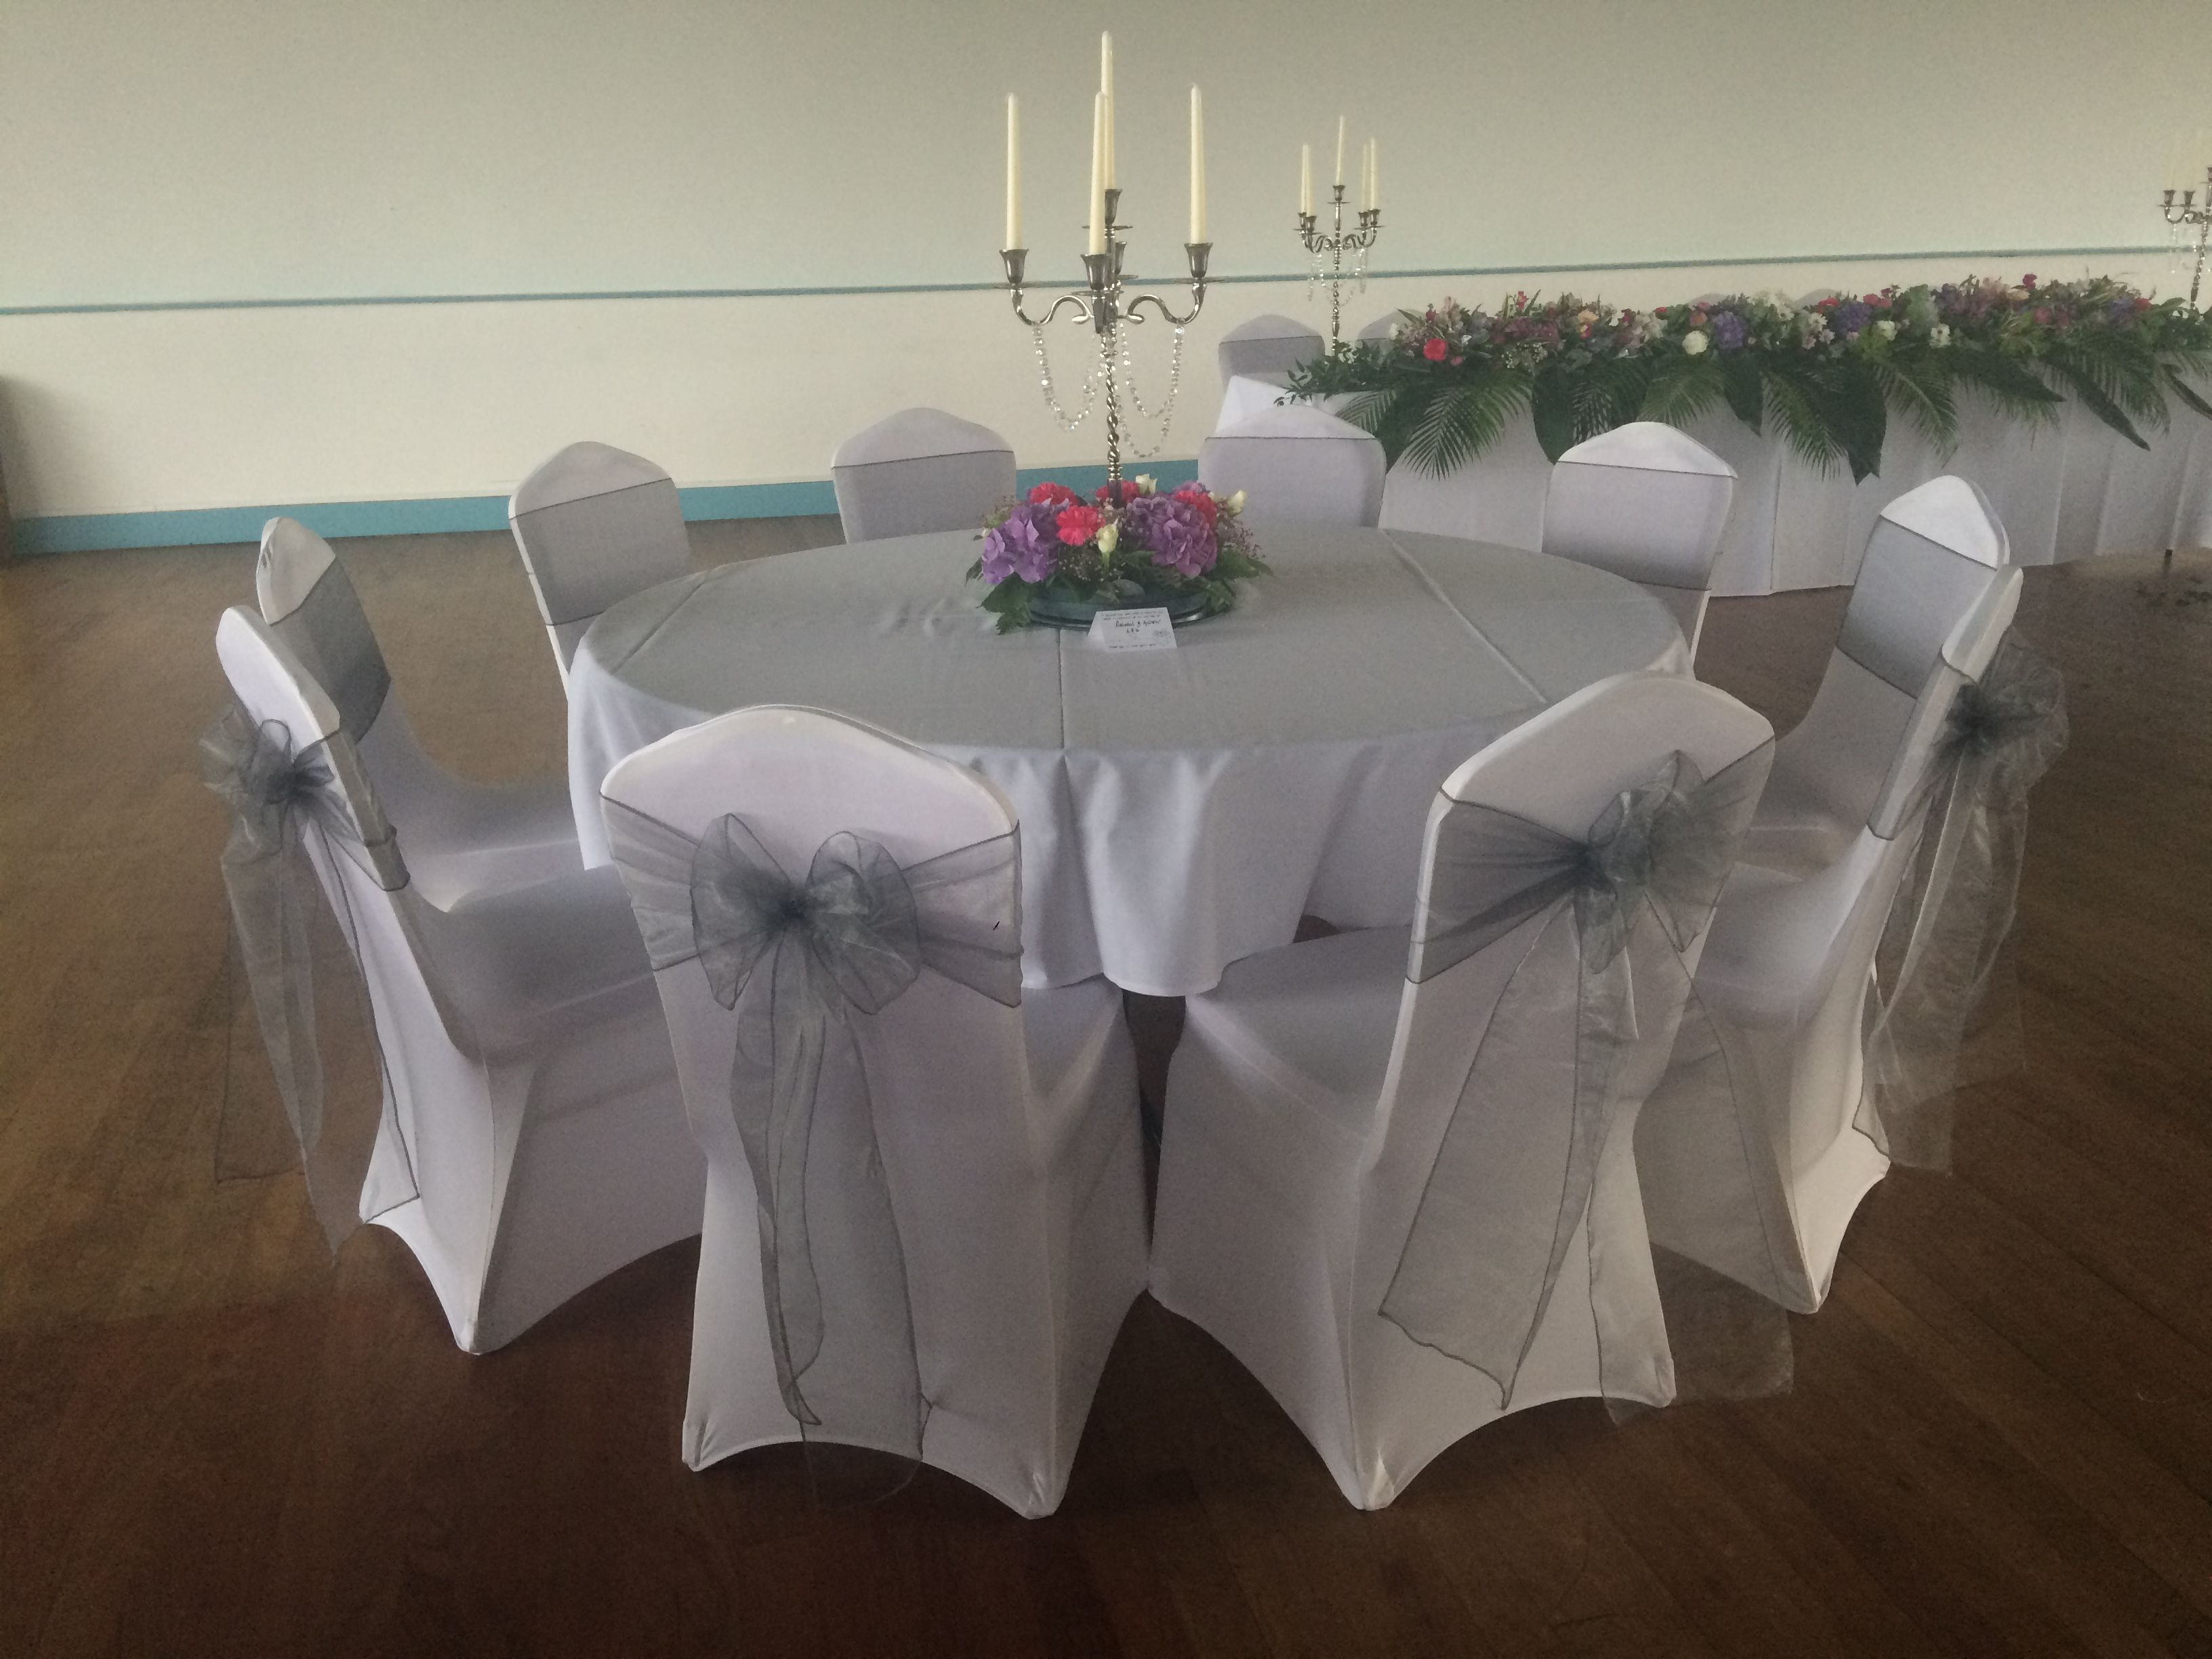 Chair Covers And Silver Organza Sashes At A Wedding Reception The Patti Raj Swansea